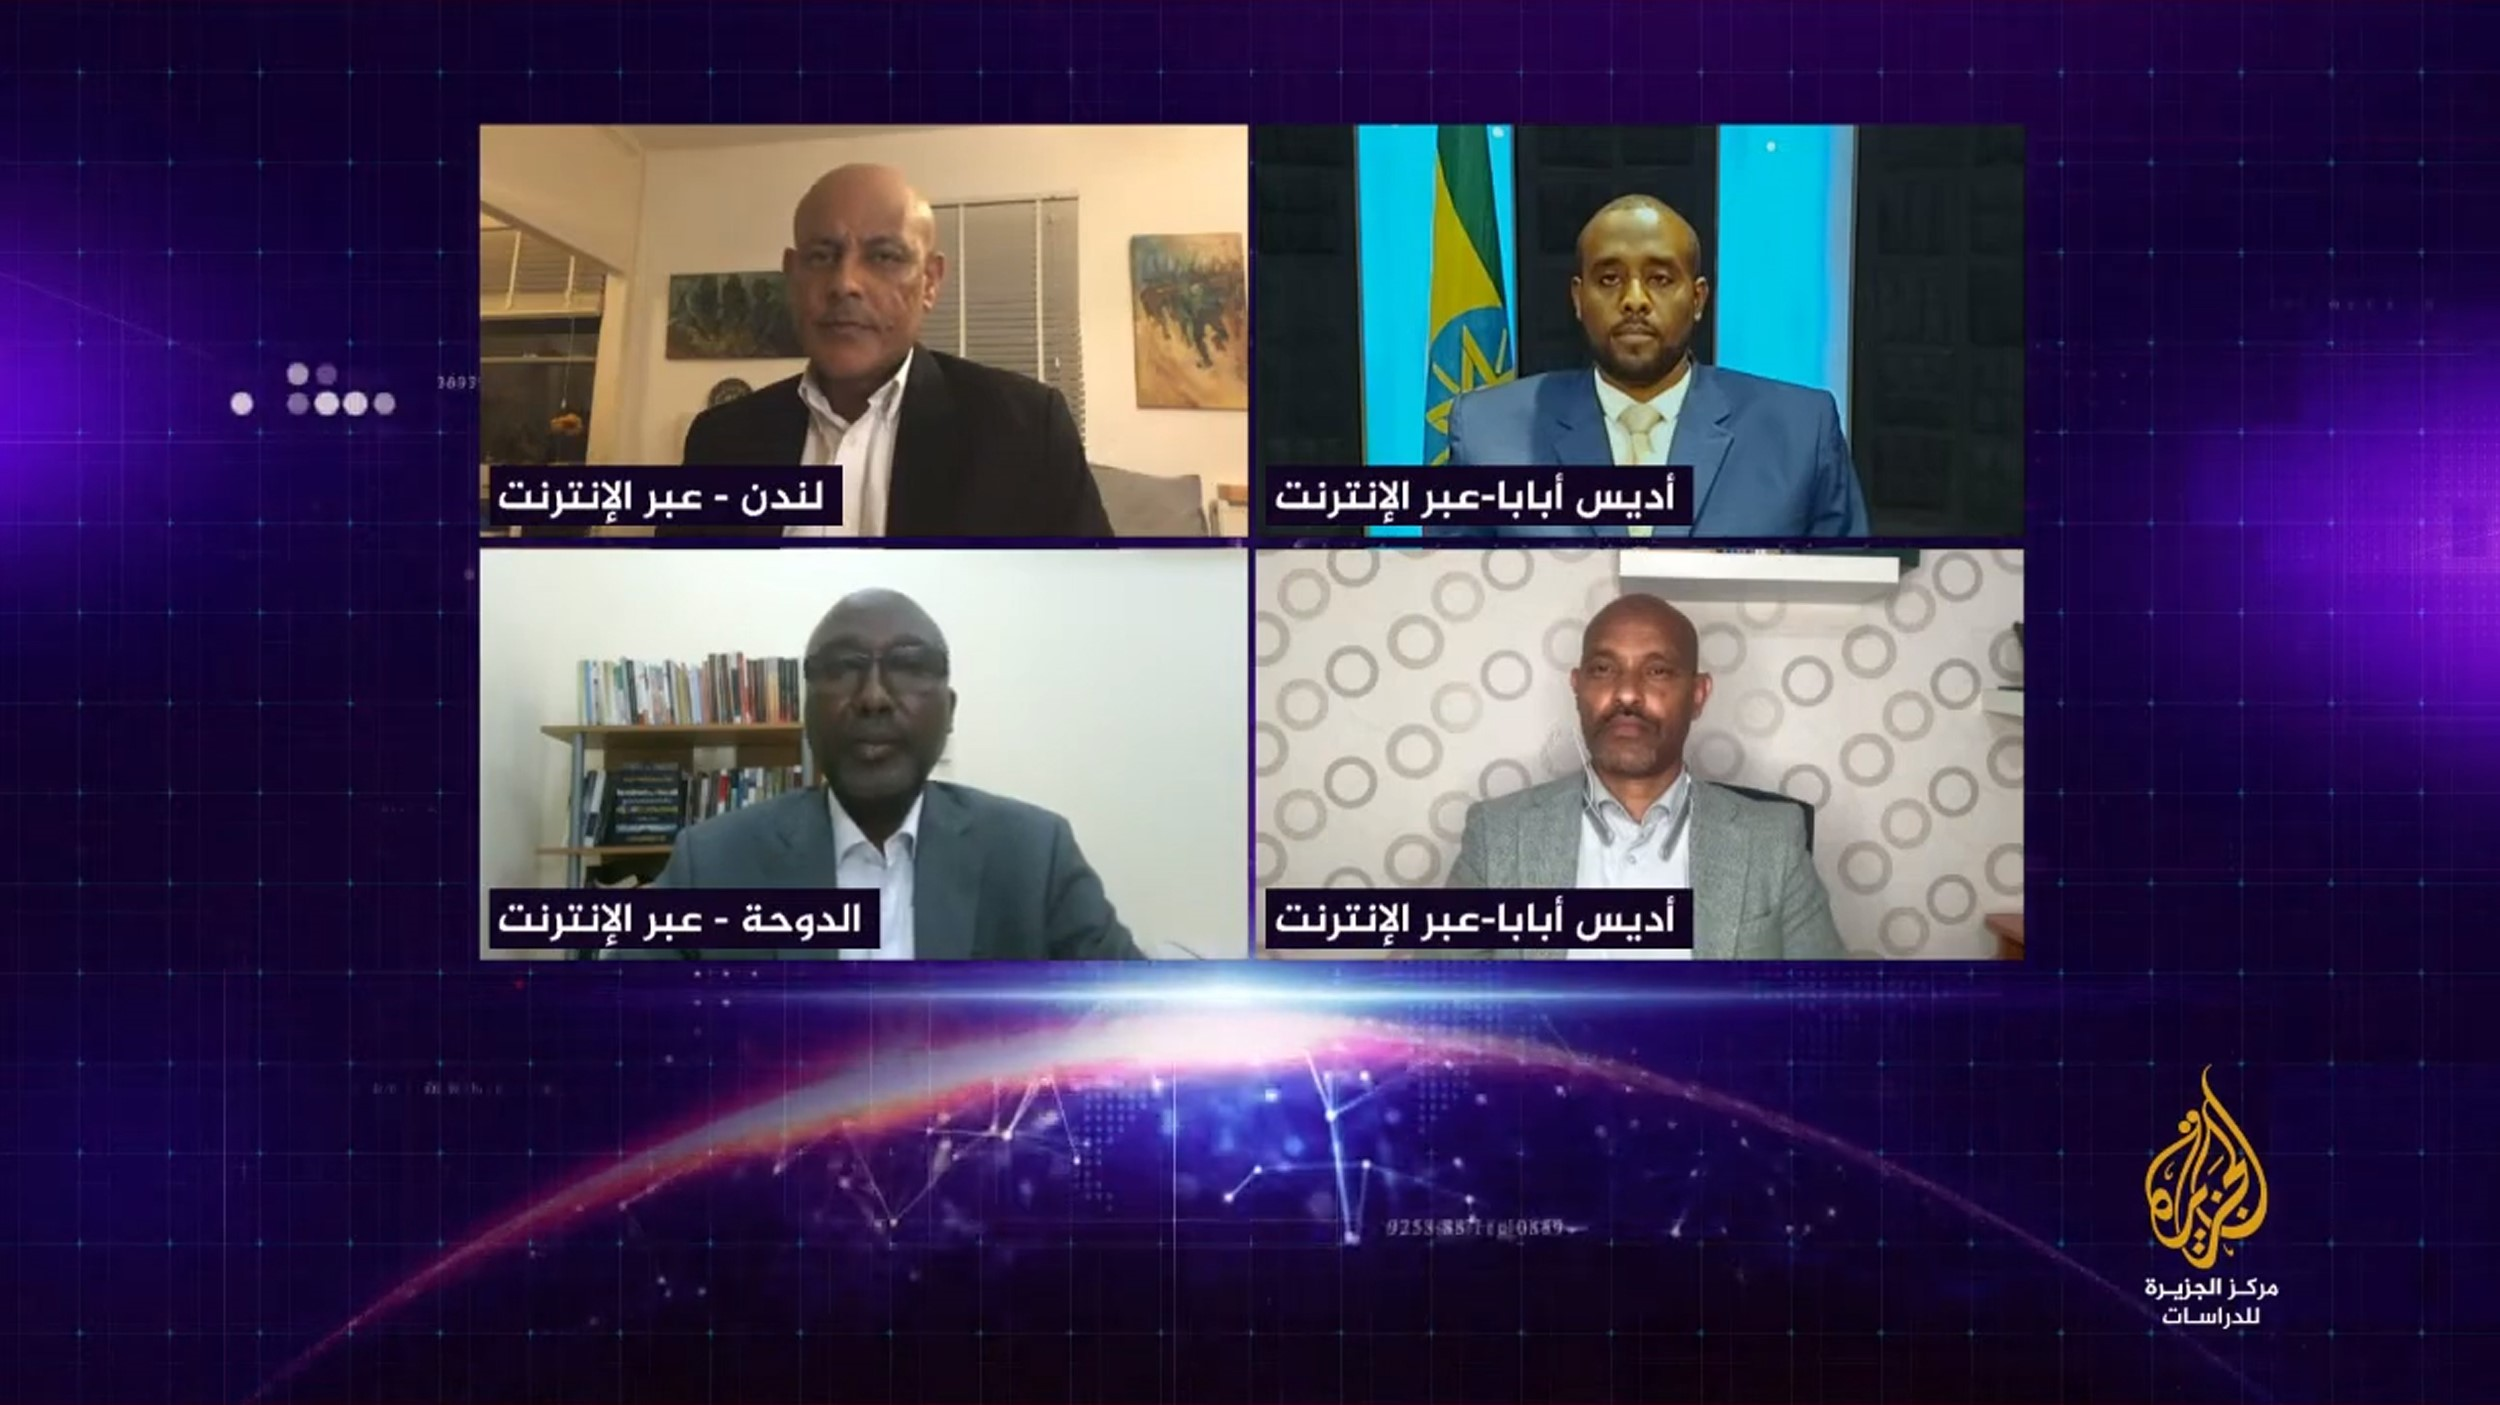 studies.aljazeera.net: Researchers on Tigray conflict: establishing a democratic approach spares Ethiopia and the Horn of Africa turmoil